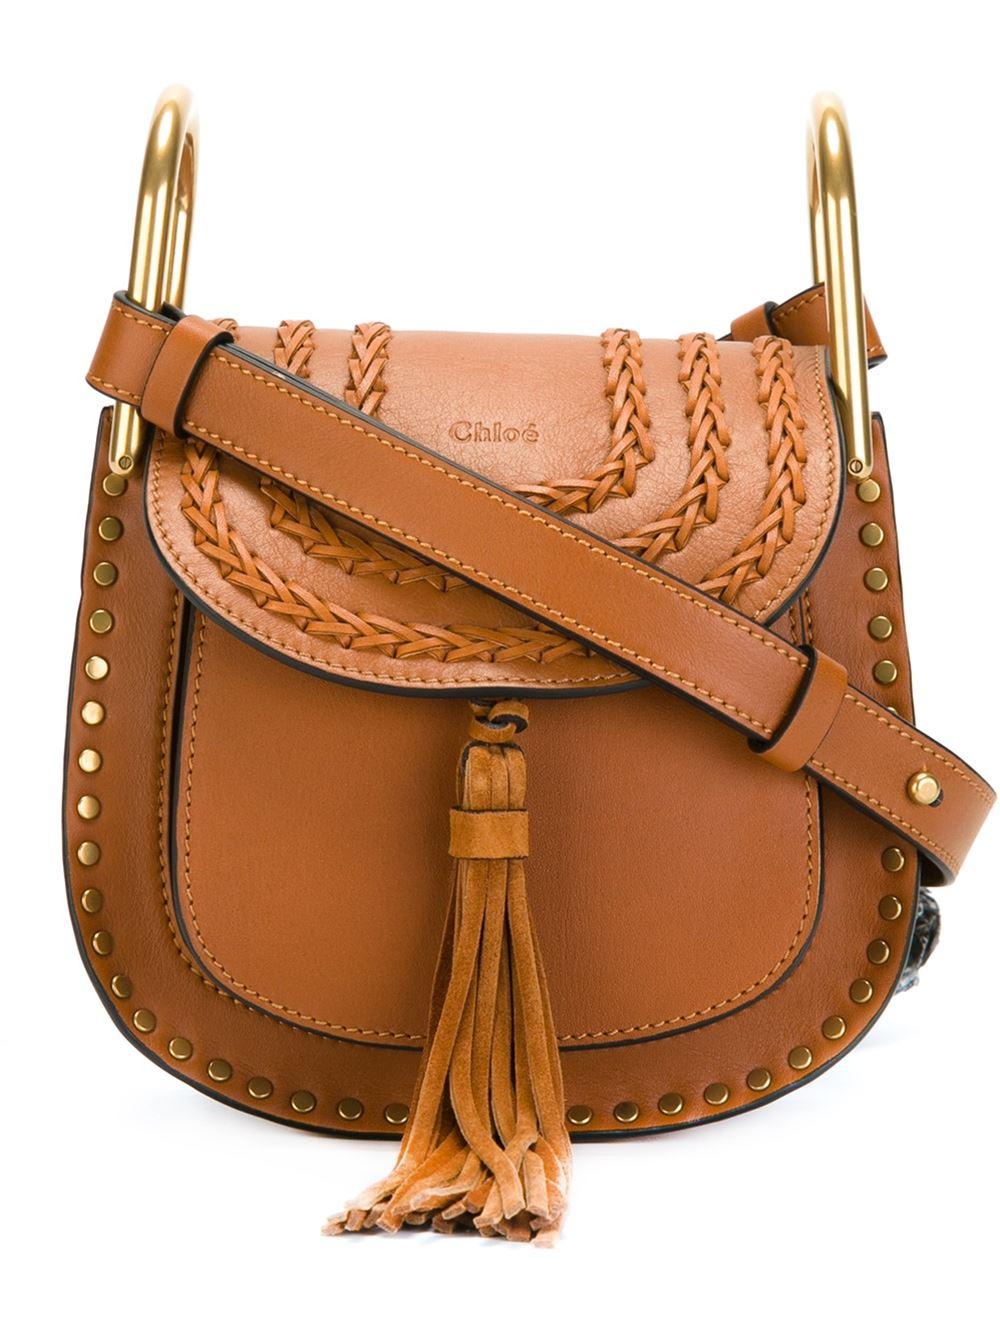 chloe hudson fringed shoulder bag